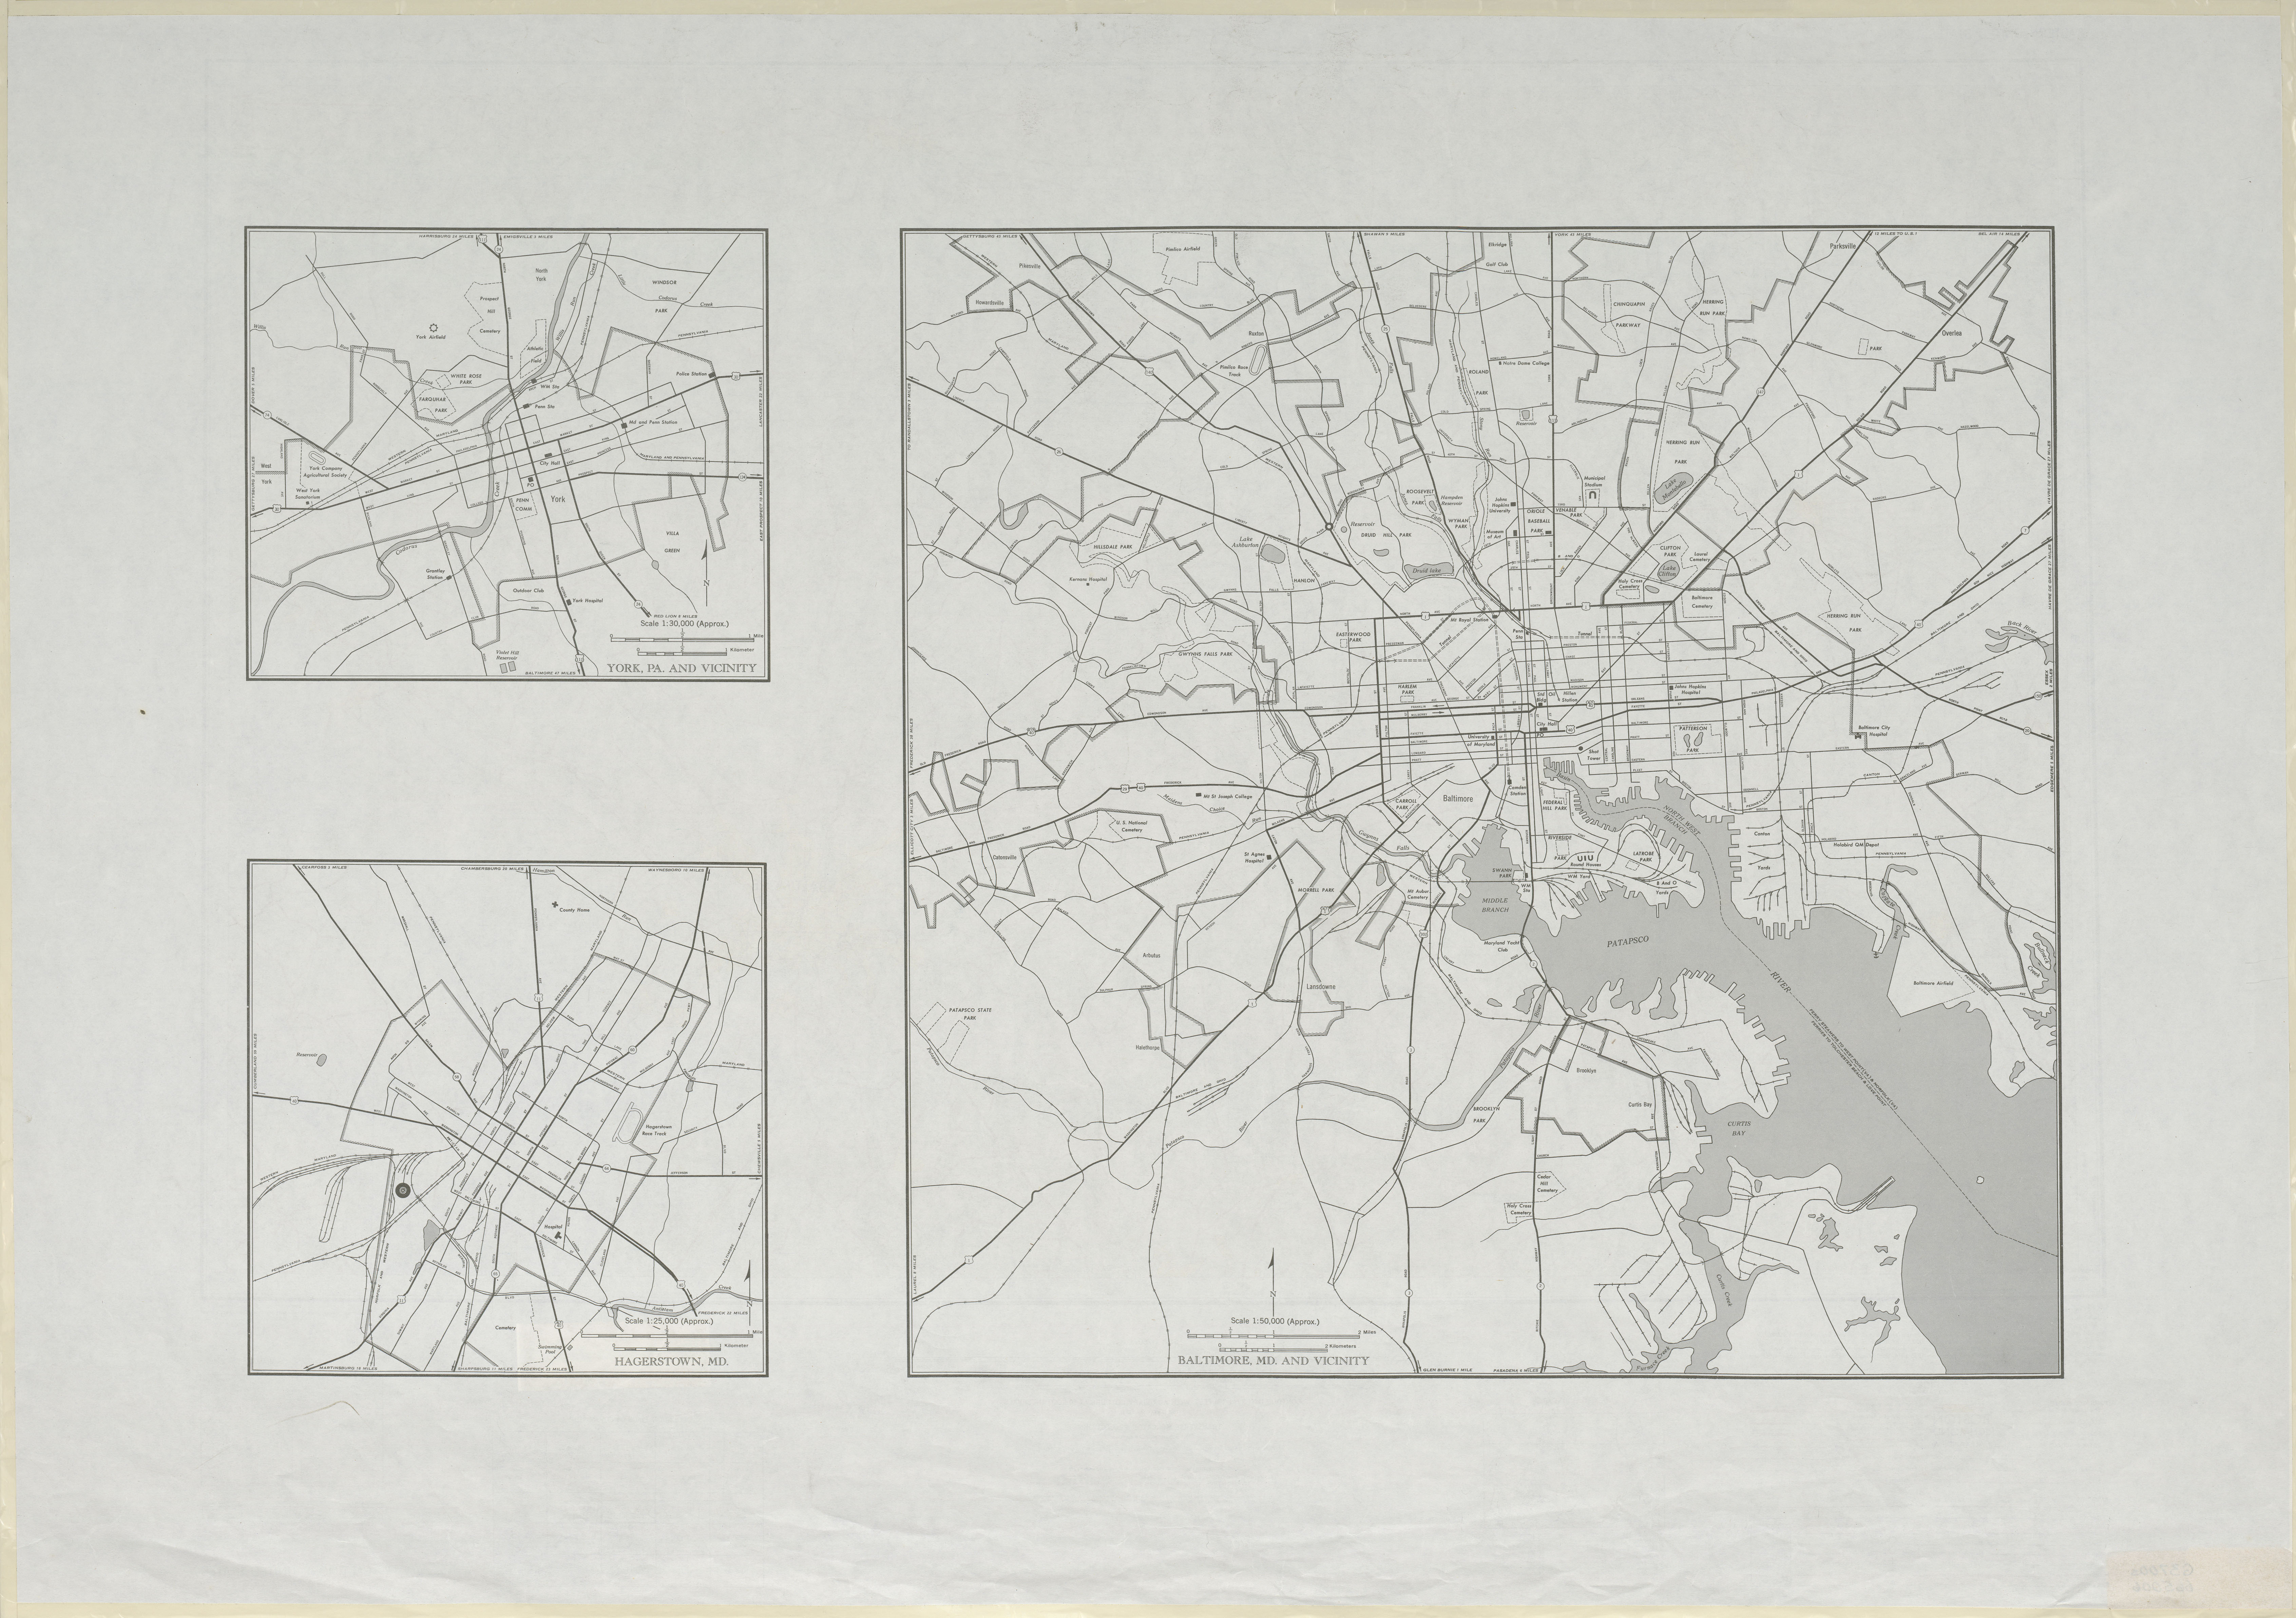 Maps United States Map Baltimore - Baltimore on the us map